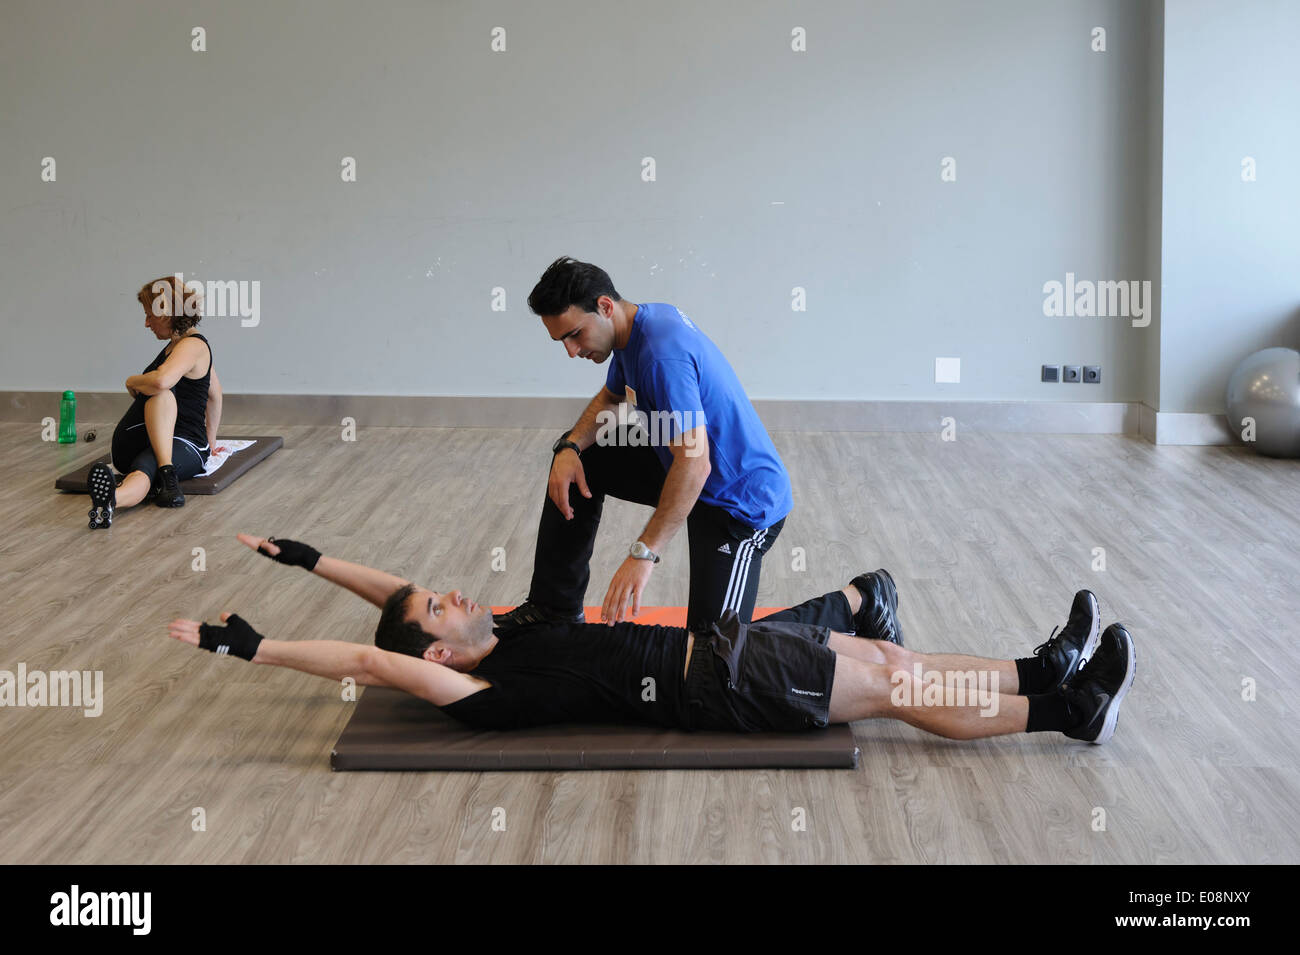 Personal trainer in the gym with a client - Stock Image